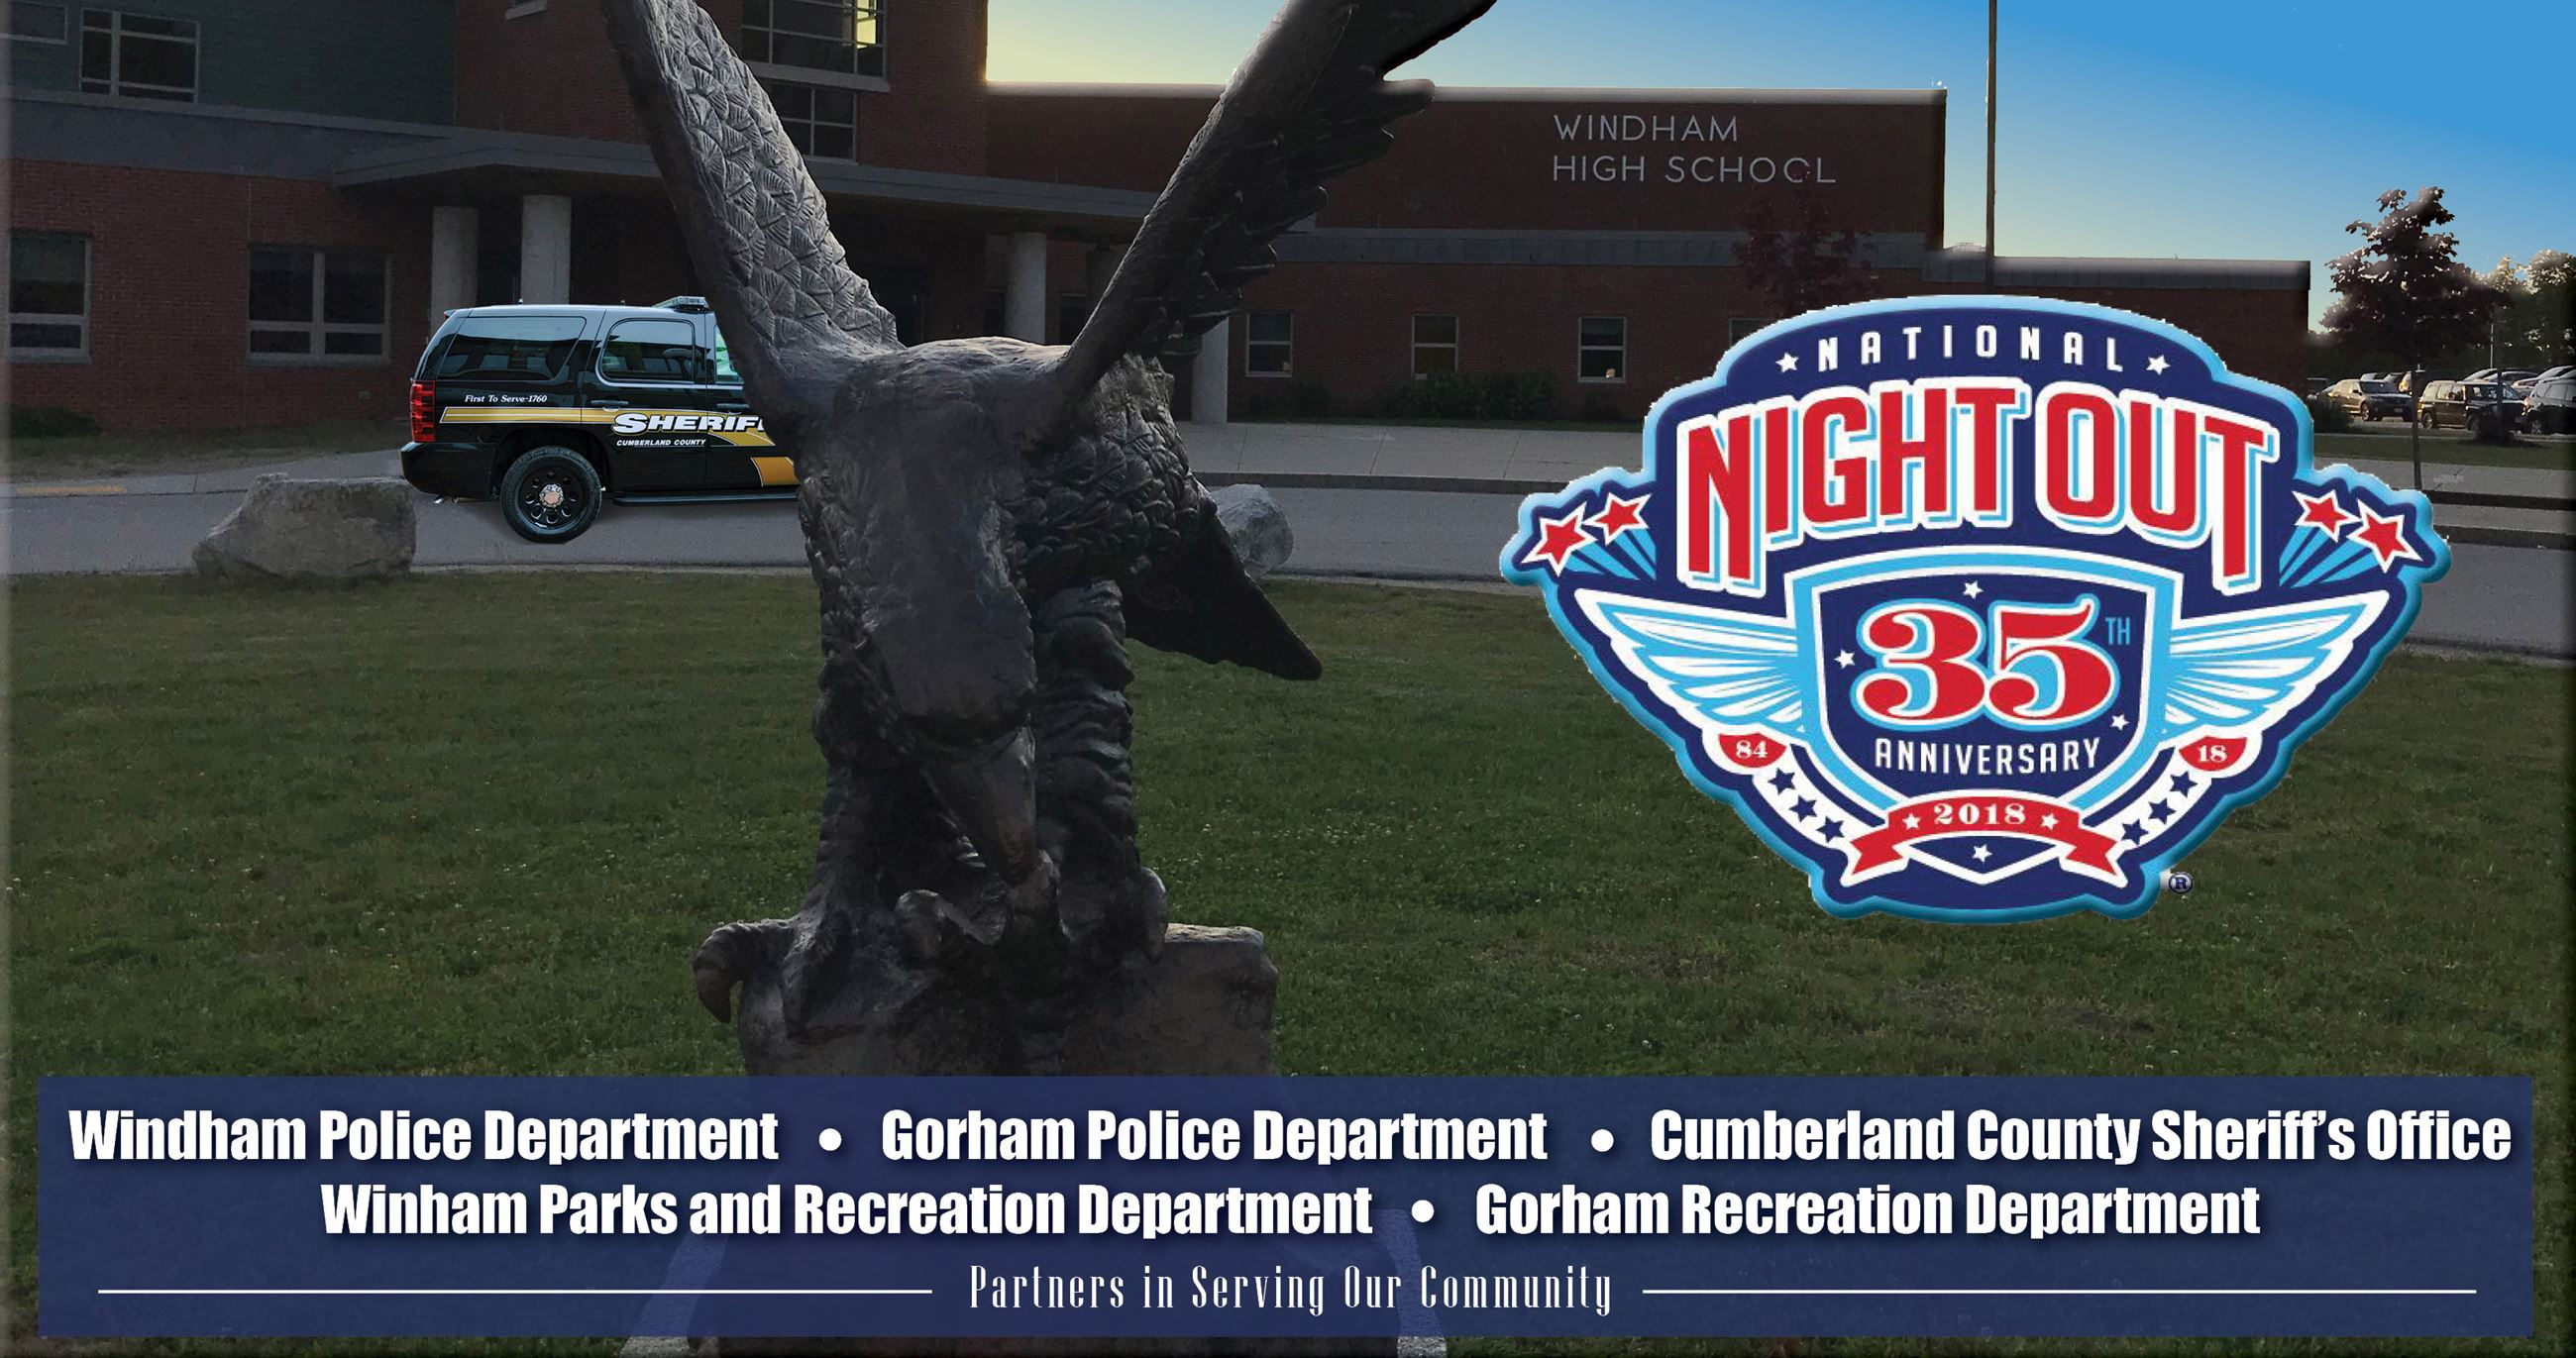 2018 National Night Out 35th Anniversary Banner